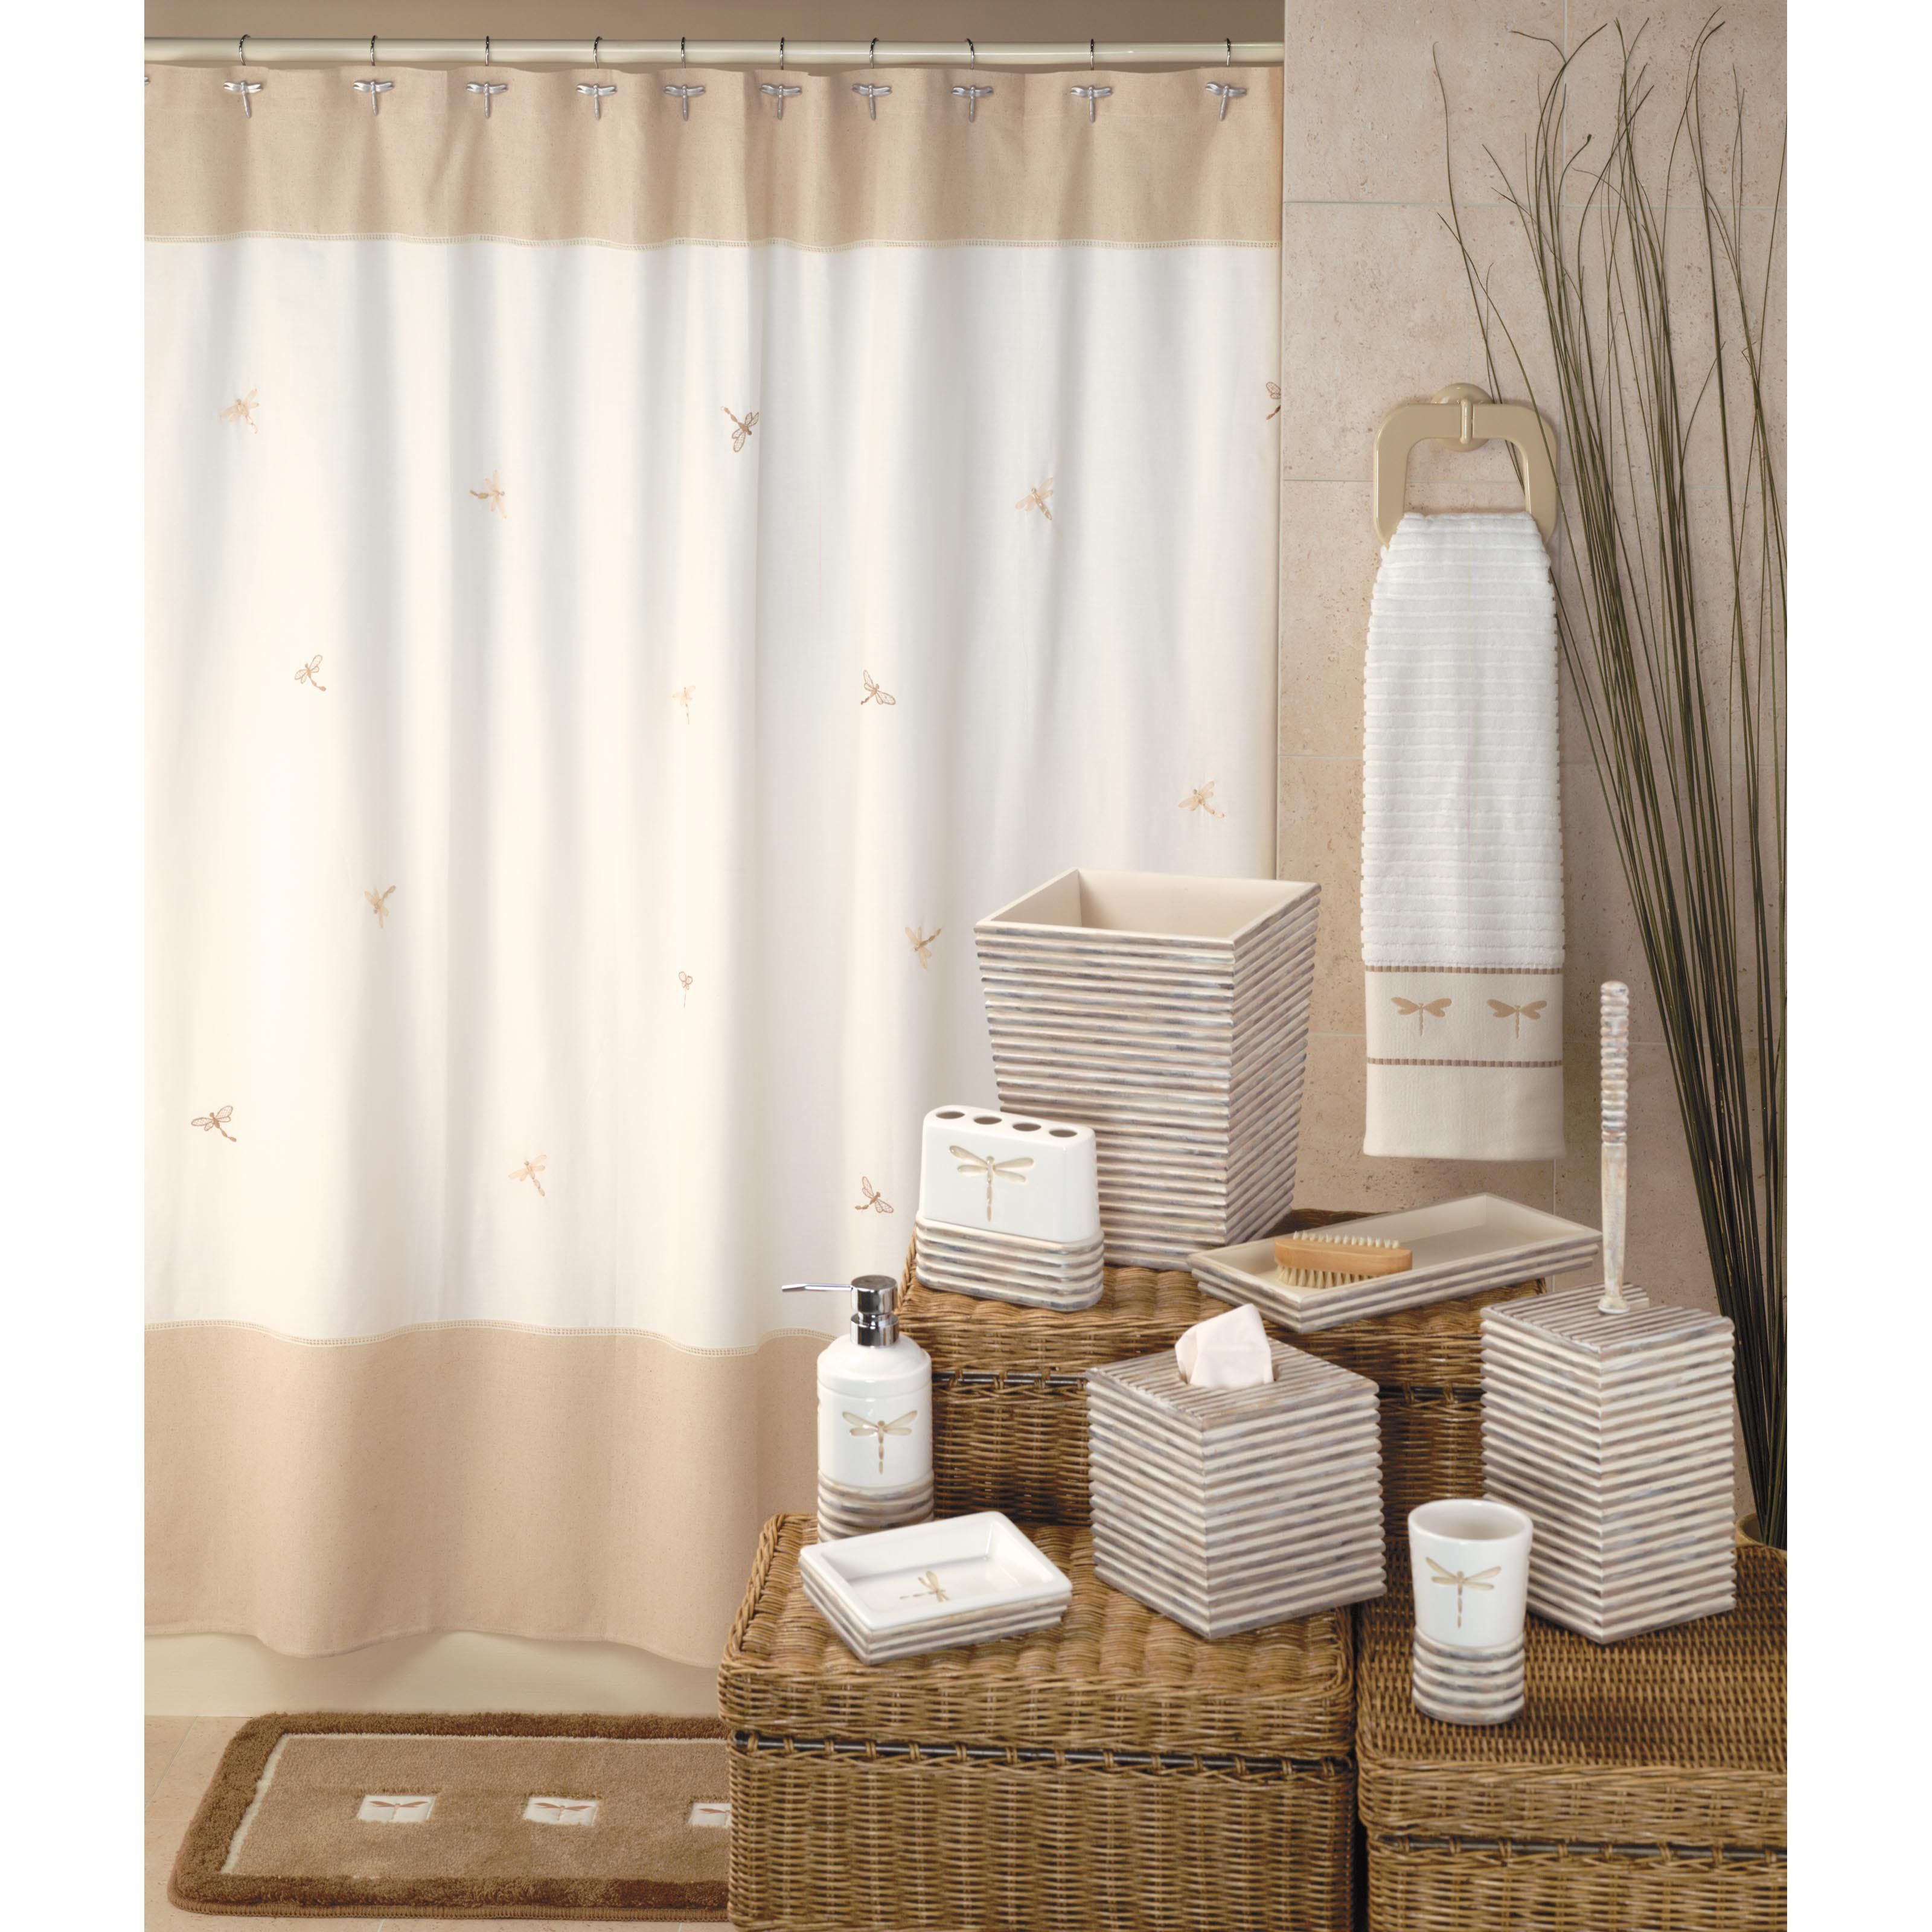 Dragonfly shower curtain s products pinterest